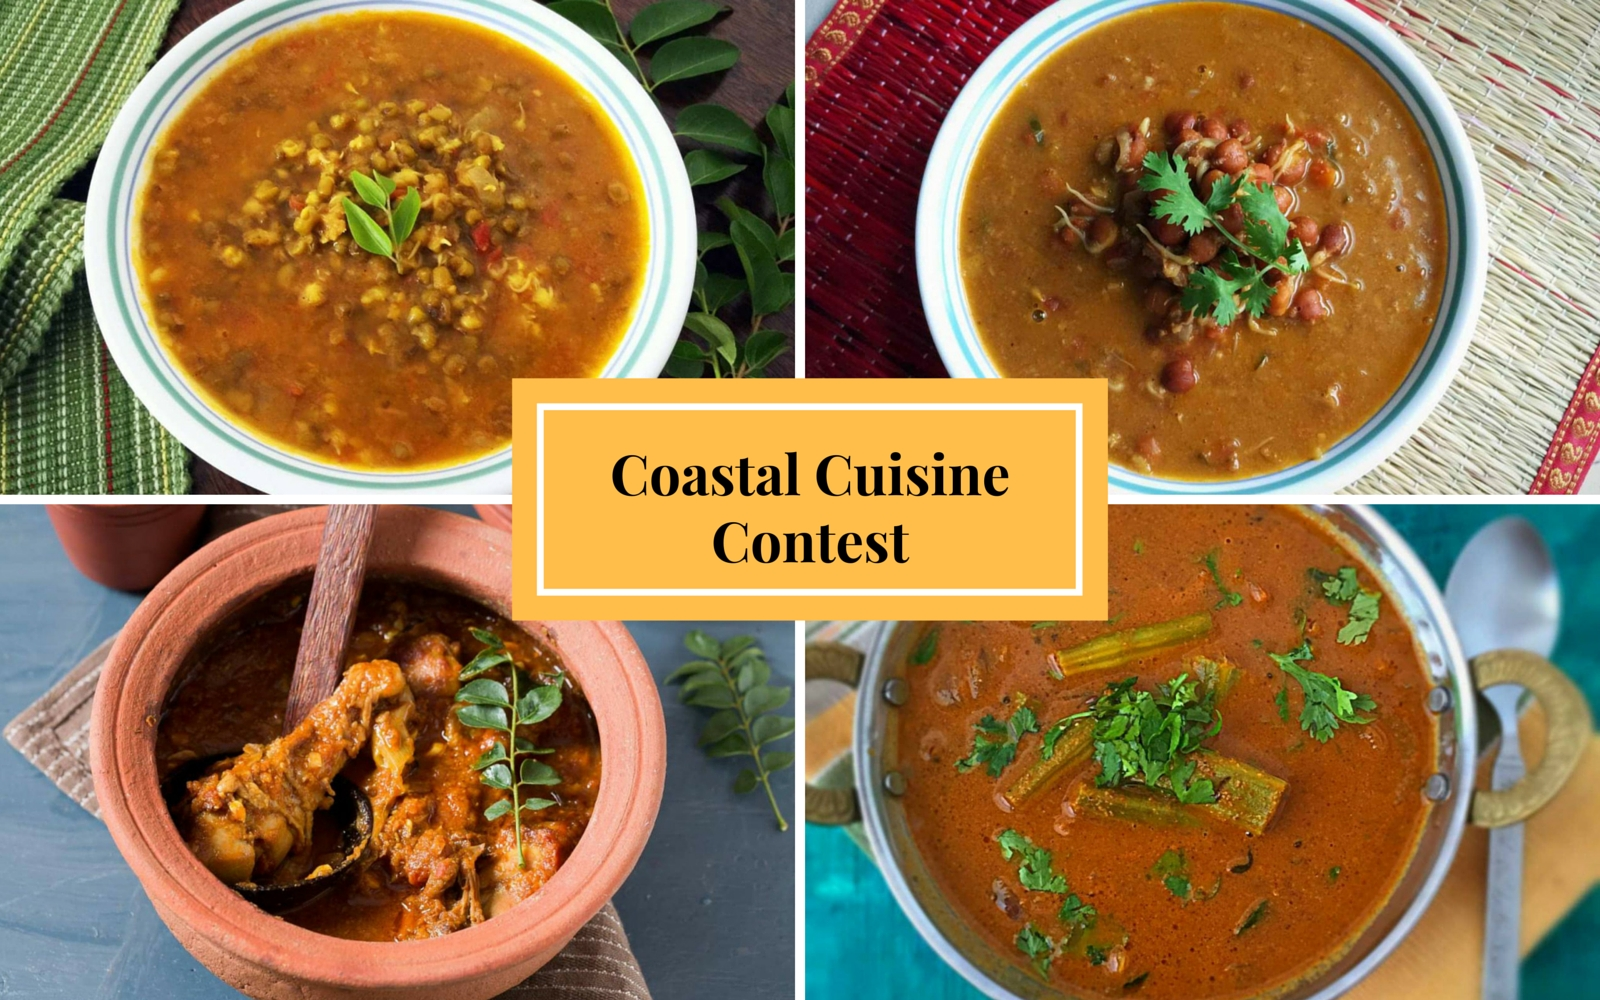 Coastal Cuisine Recipe Contest - Get Your Cooking Hats